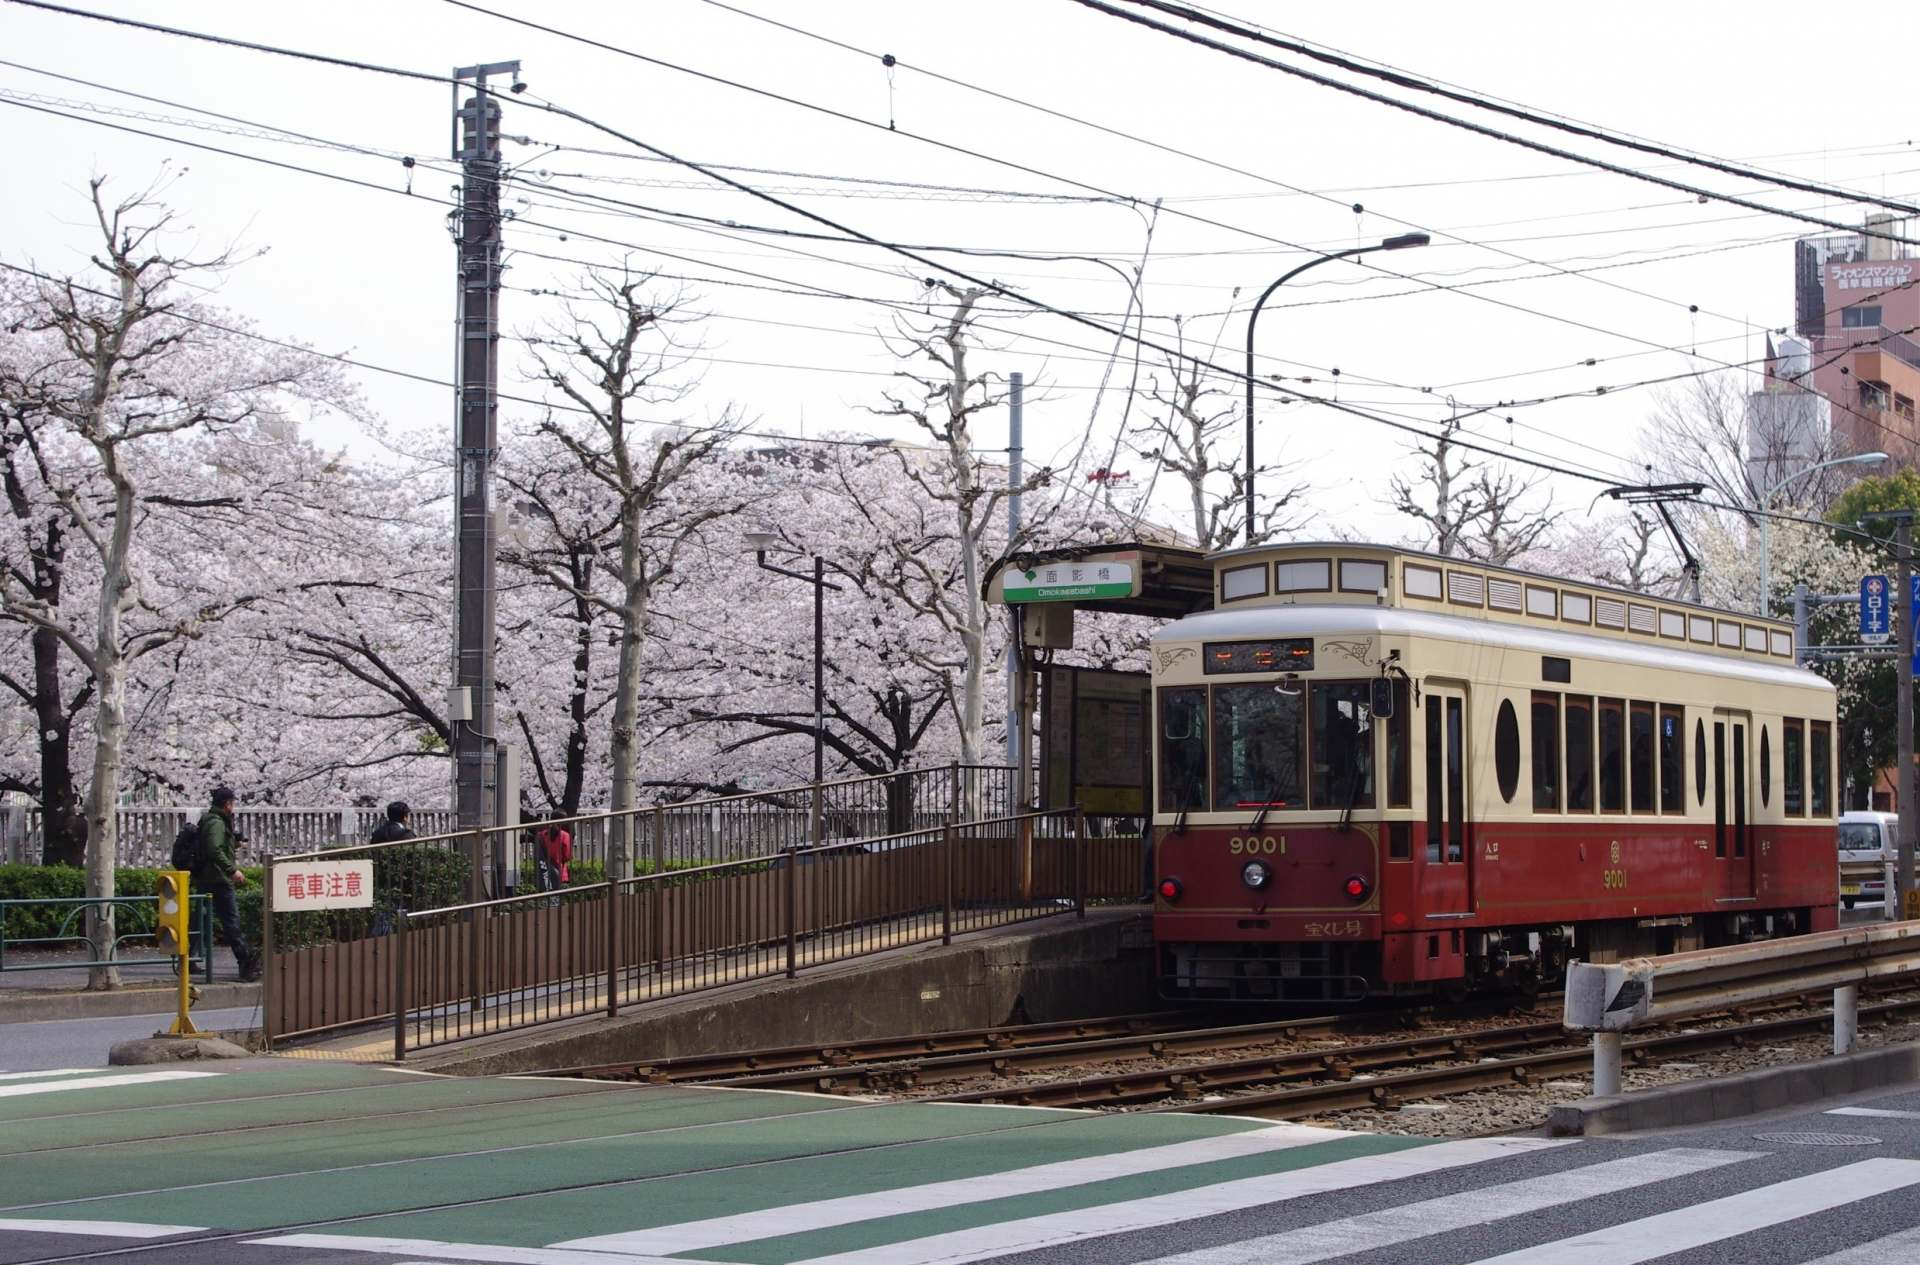 The cherry blossoms by the Tokyo Sakura Tram's (Toden Arakawa Line) Omokagebashi stop are also beautiful